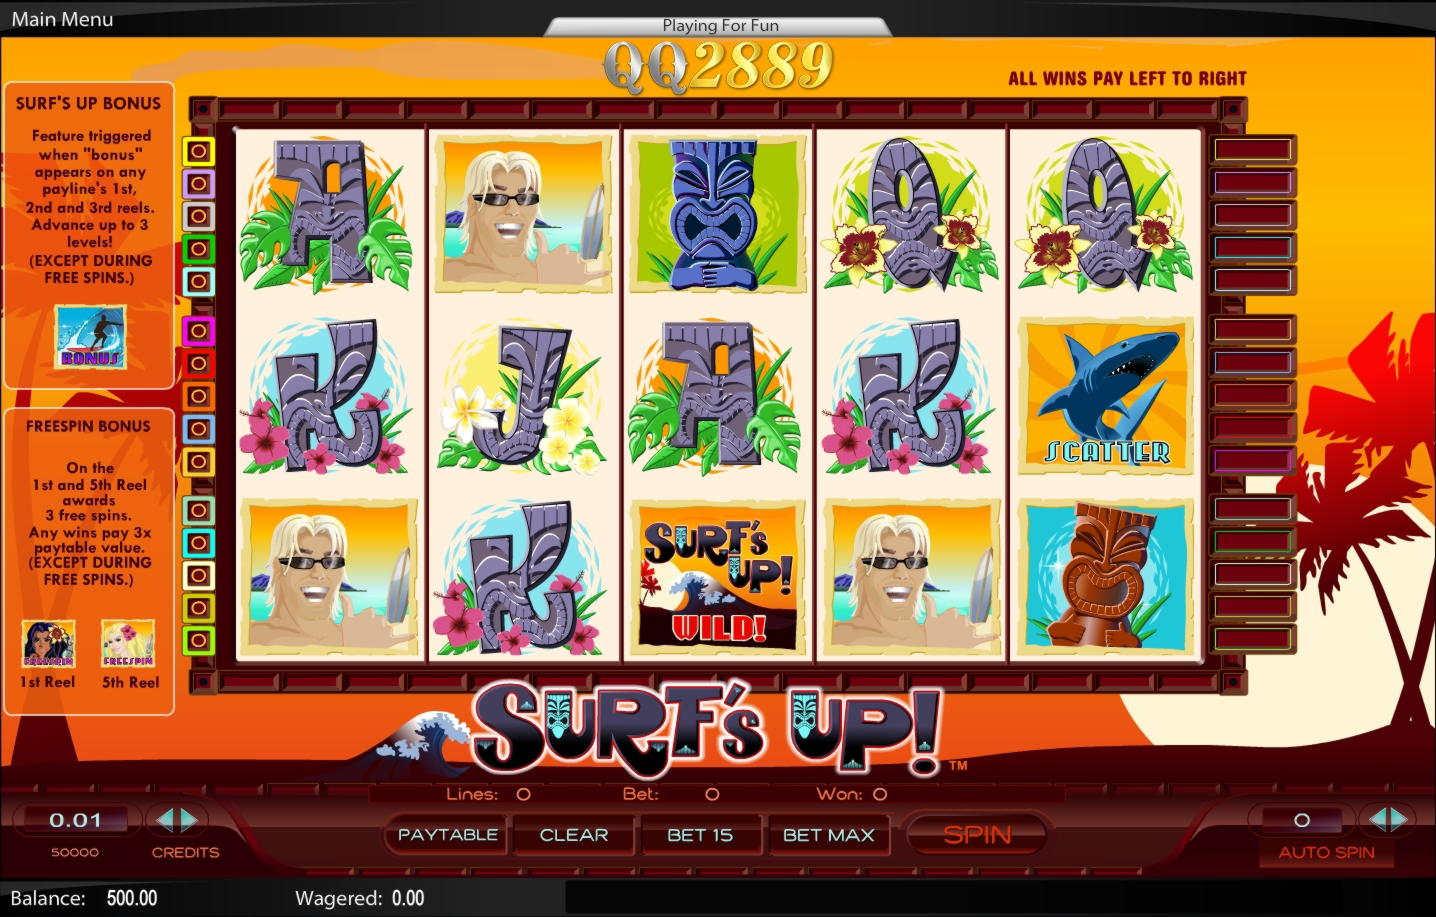 395% Match Bonus thesaurum in Island Jackpots (Sloto Buy Speculum Heroicum)